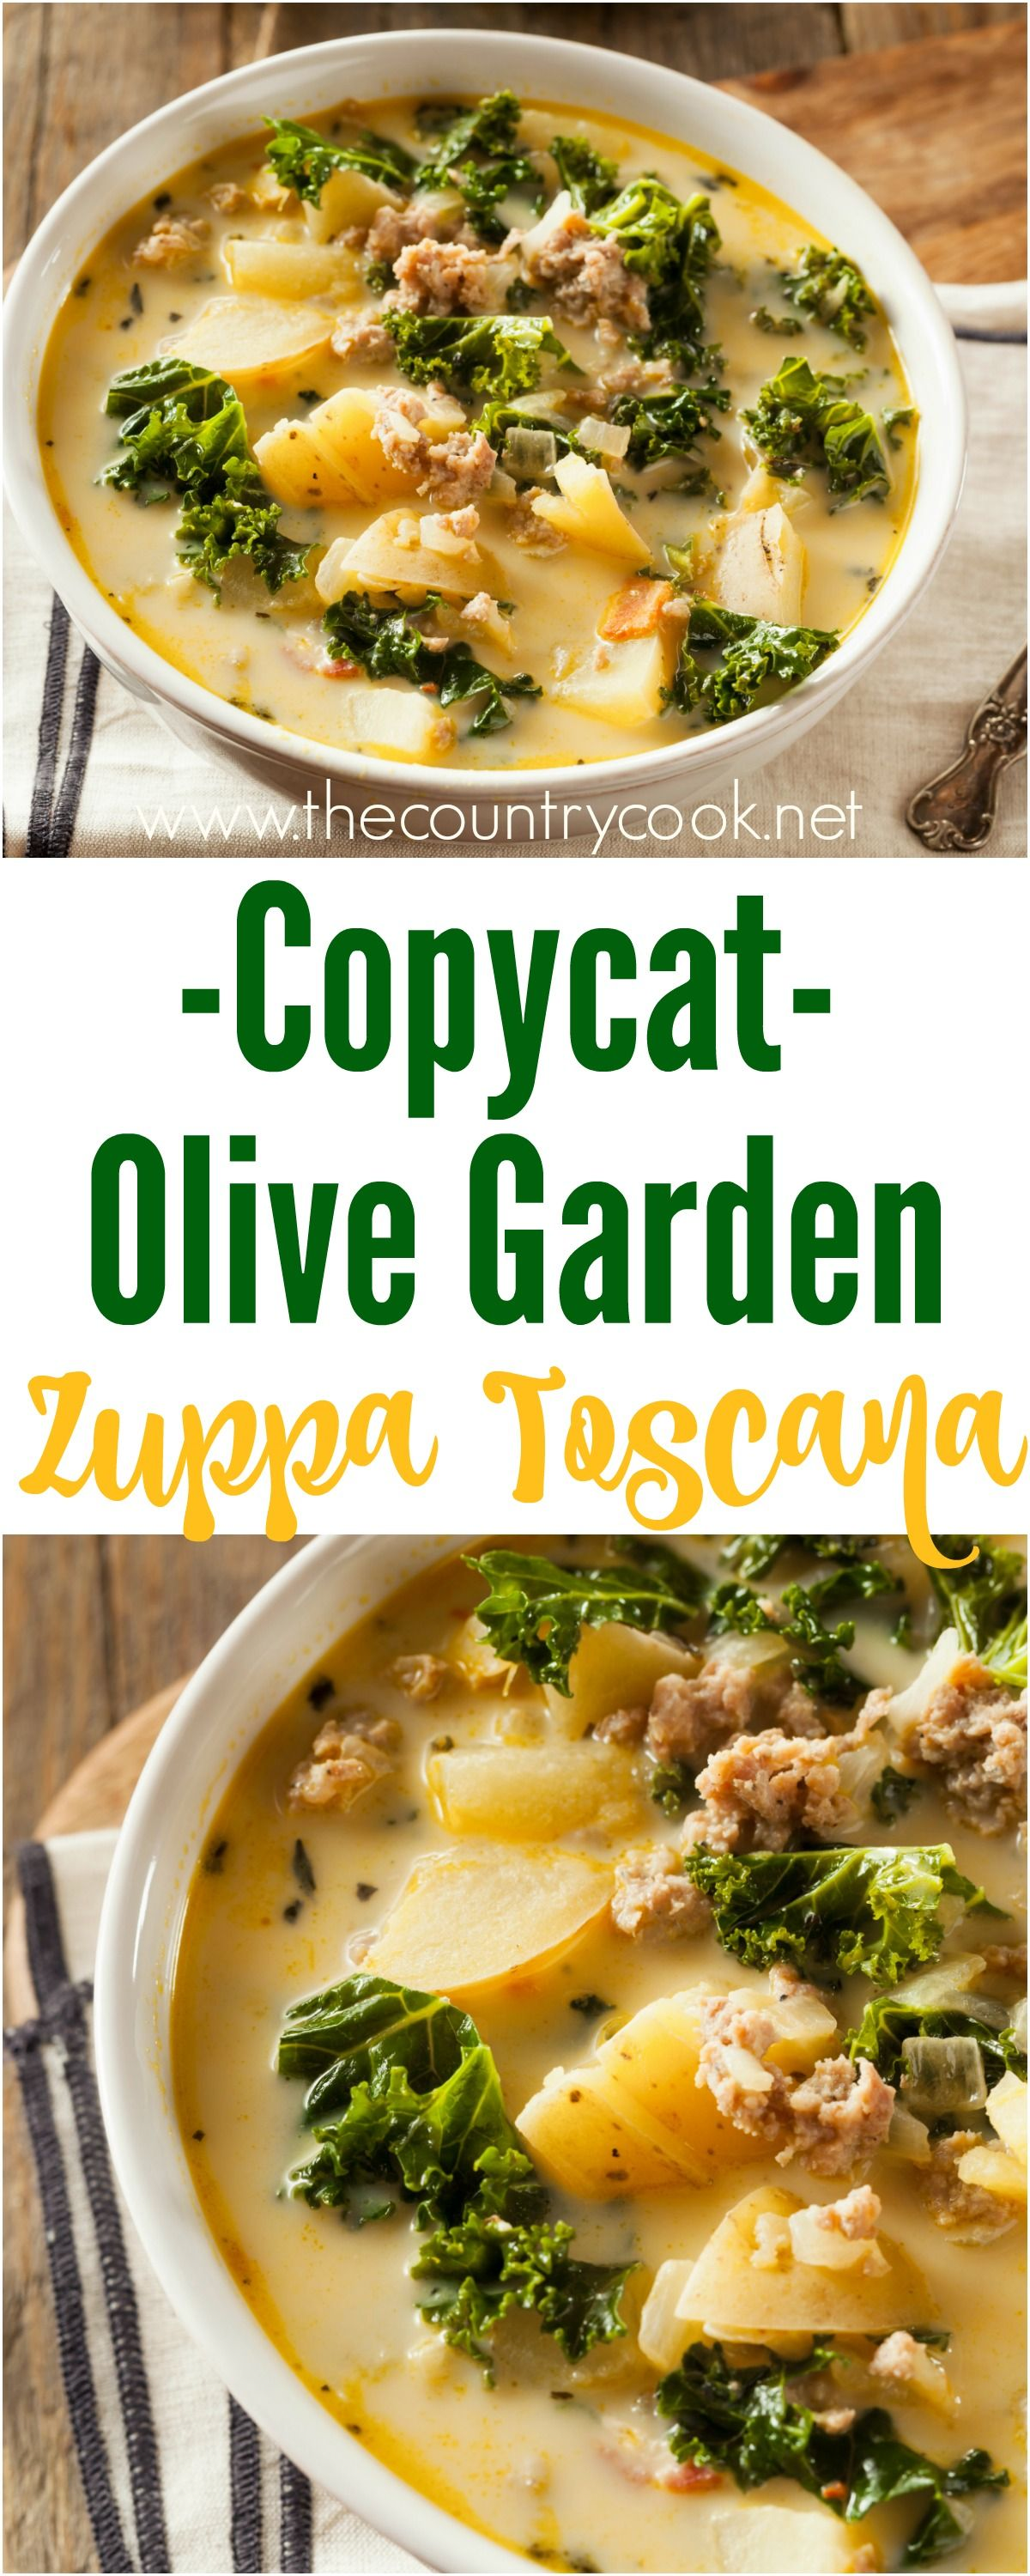 OLIVE GARDEN ZUPPA TOSCANA (+Video) | The Country Cook